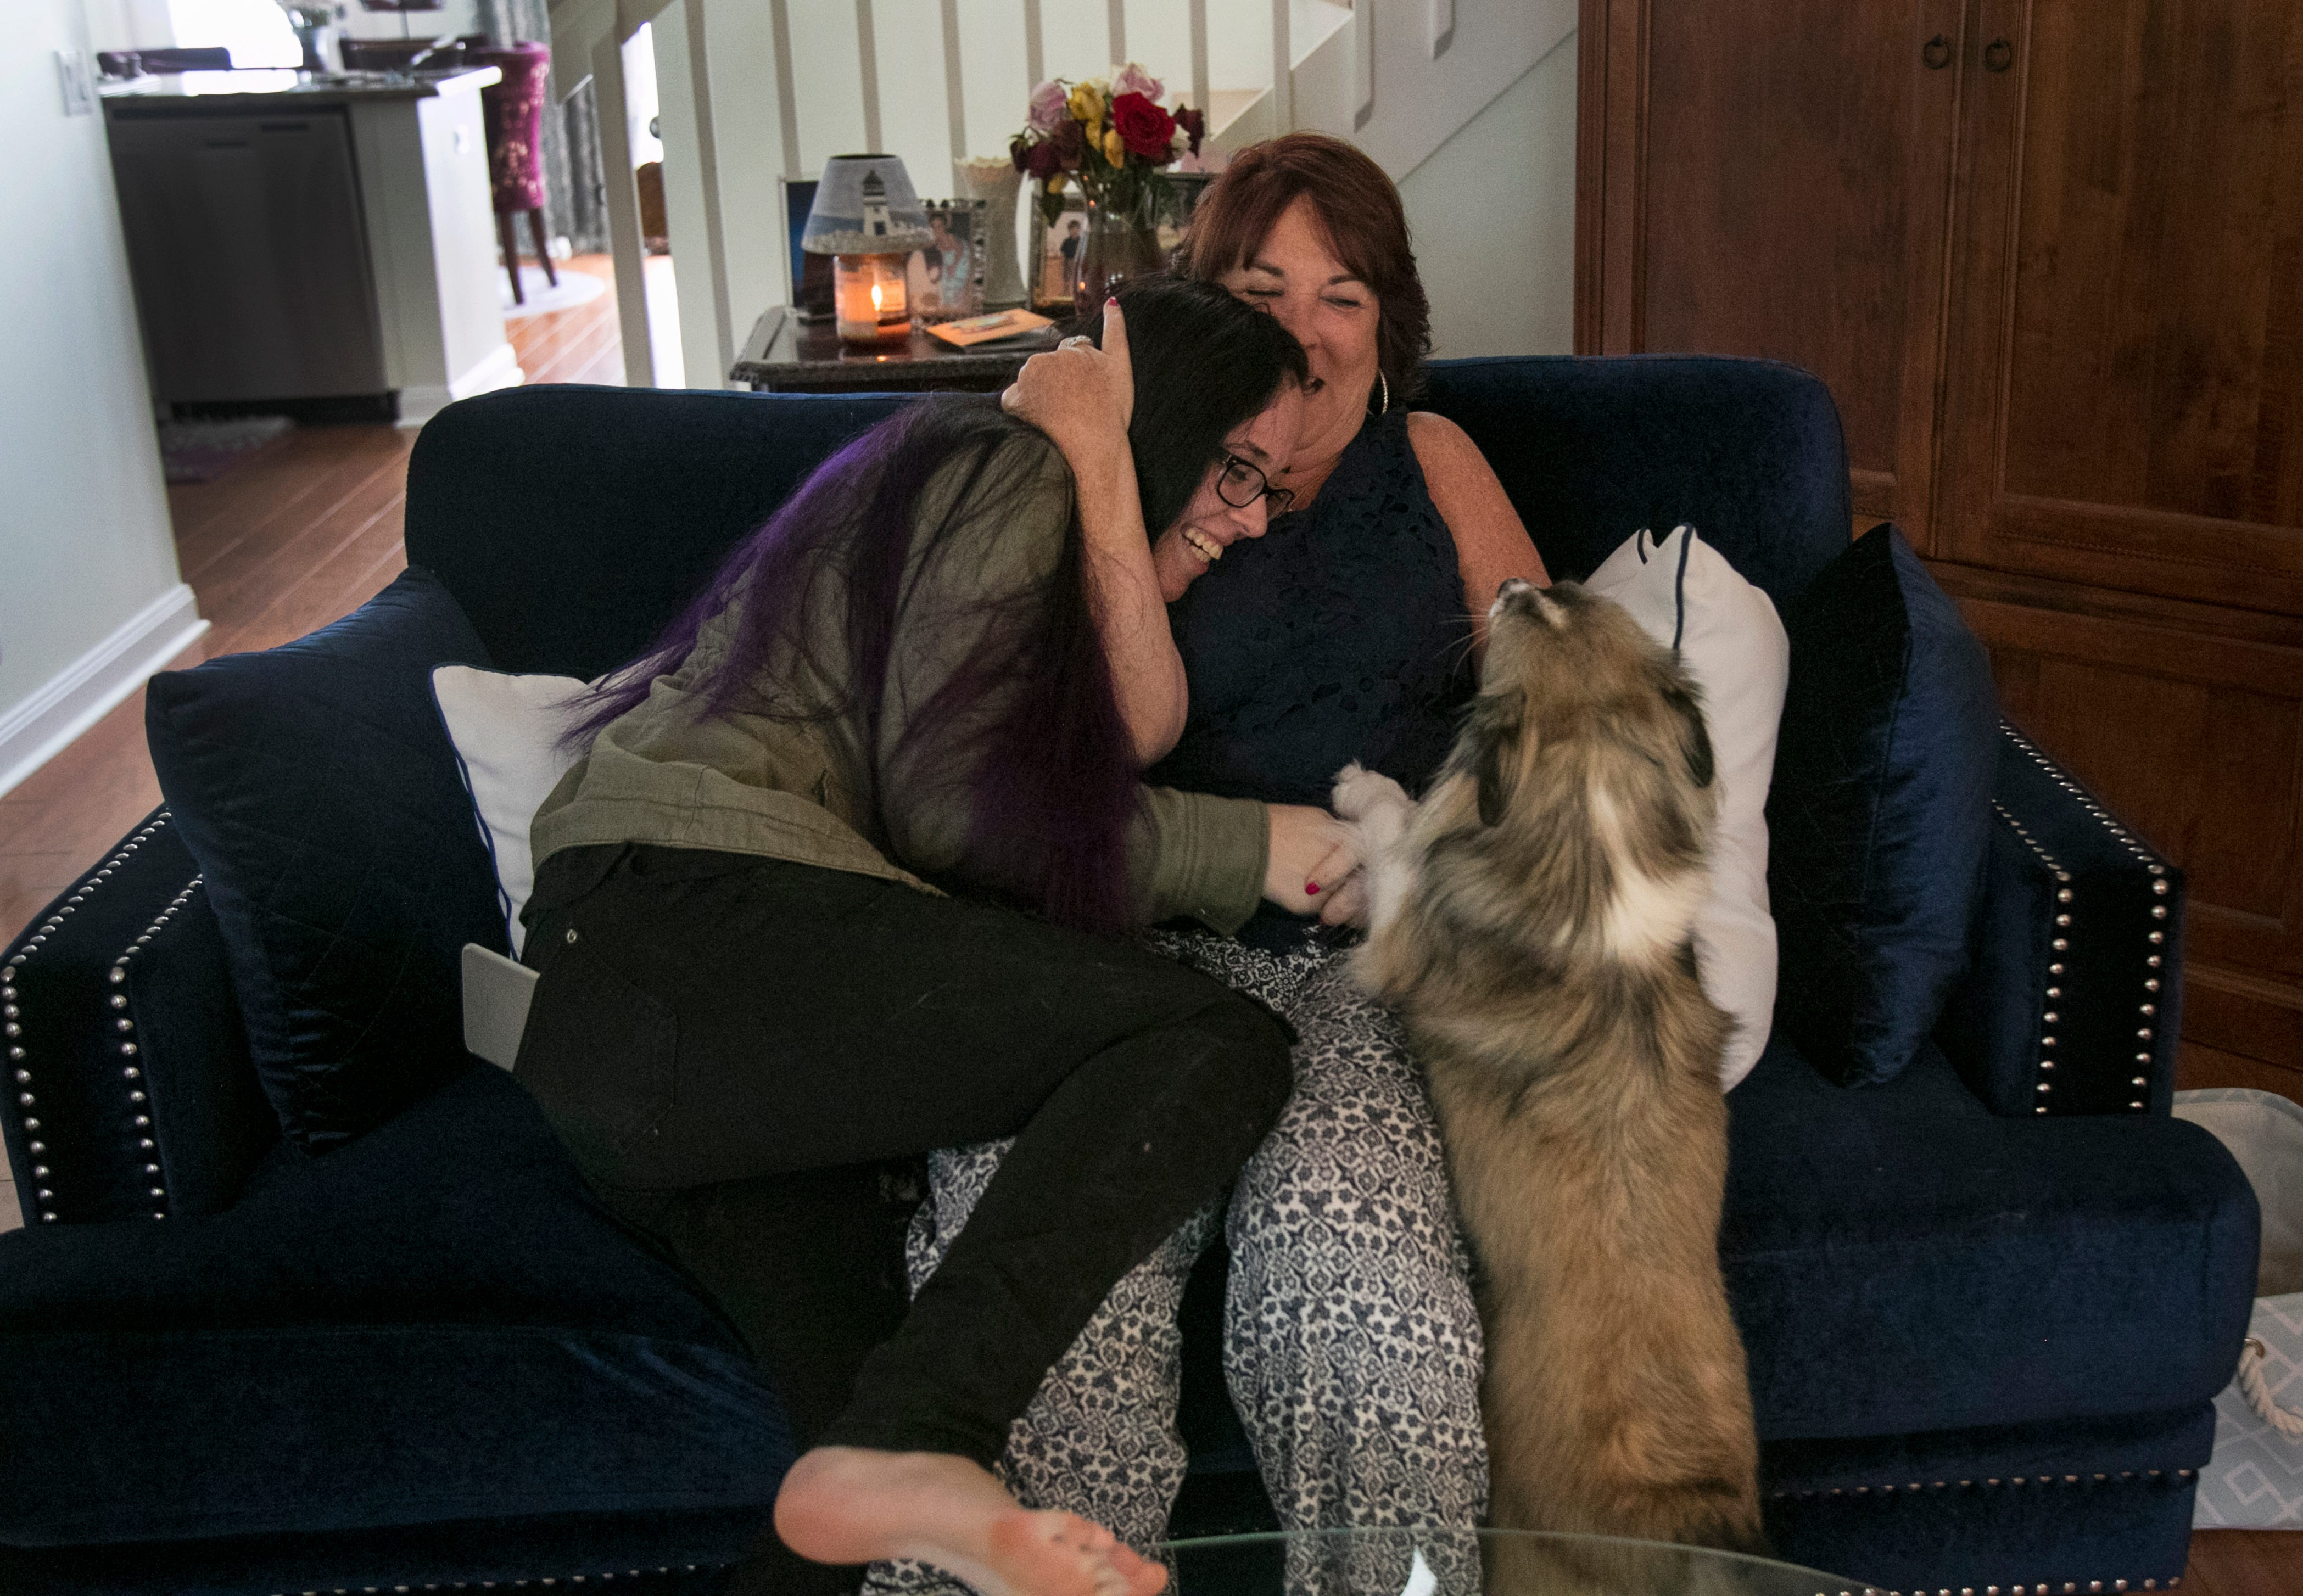 Karen Doherty and her daughter Sarah laugh together in their Naples home last year. Sarah was twice sent to The David Lawrence CenterÕs crisis stabilization unit under the Baker Act. But her stays there led her to a therapist she trusted, and she now has an improved outlook on life.